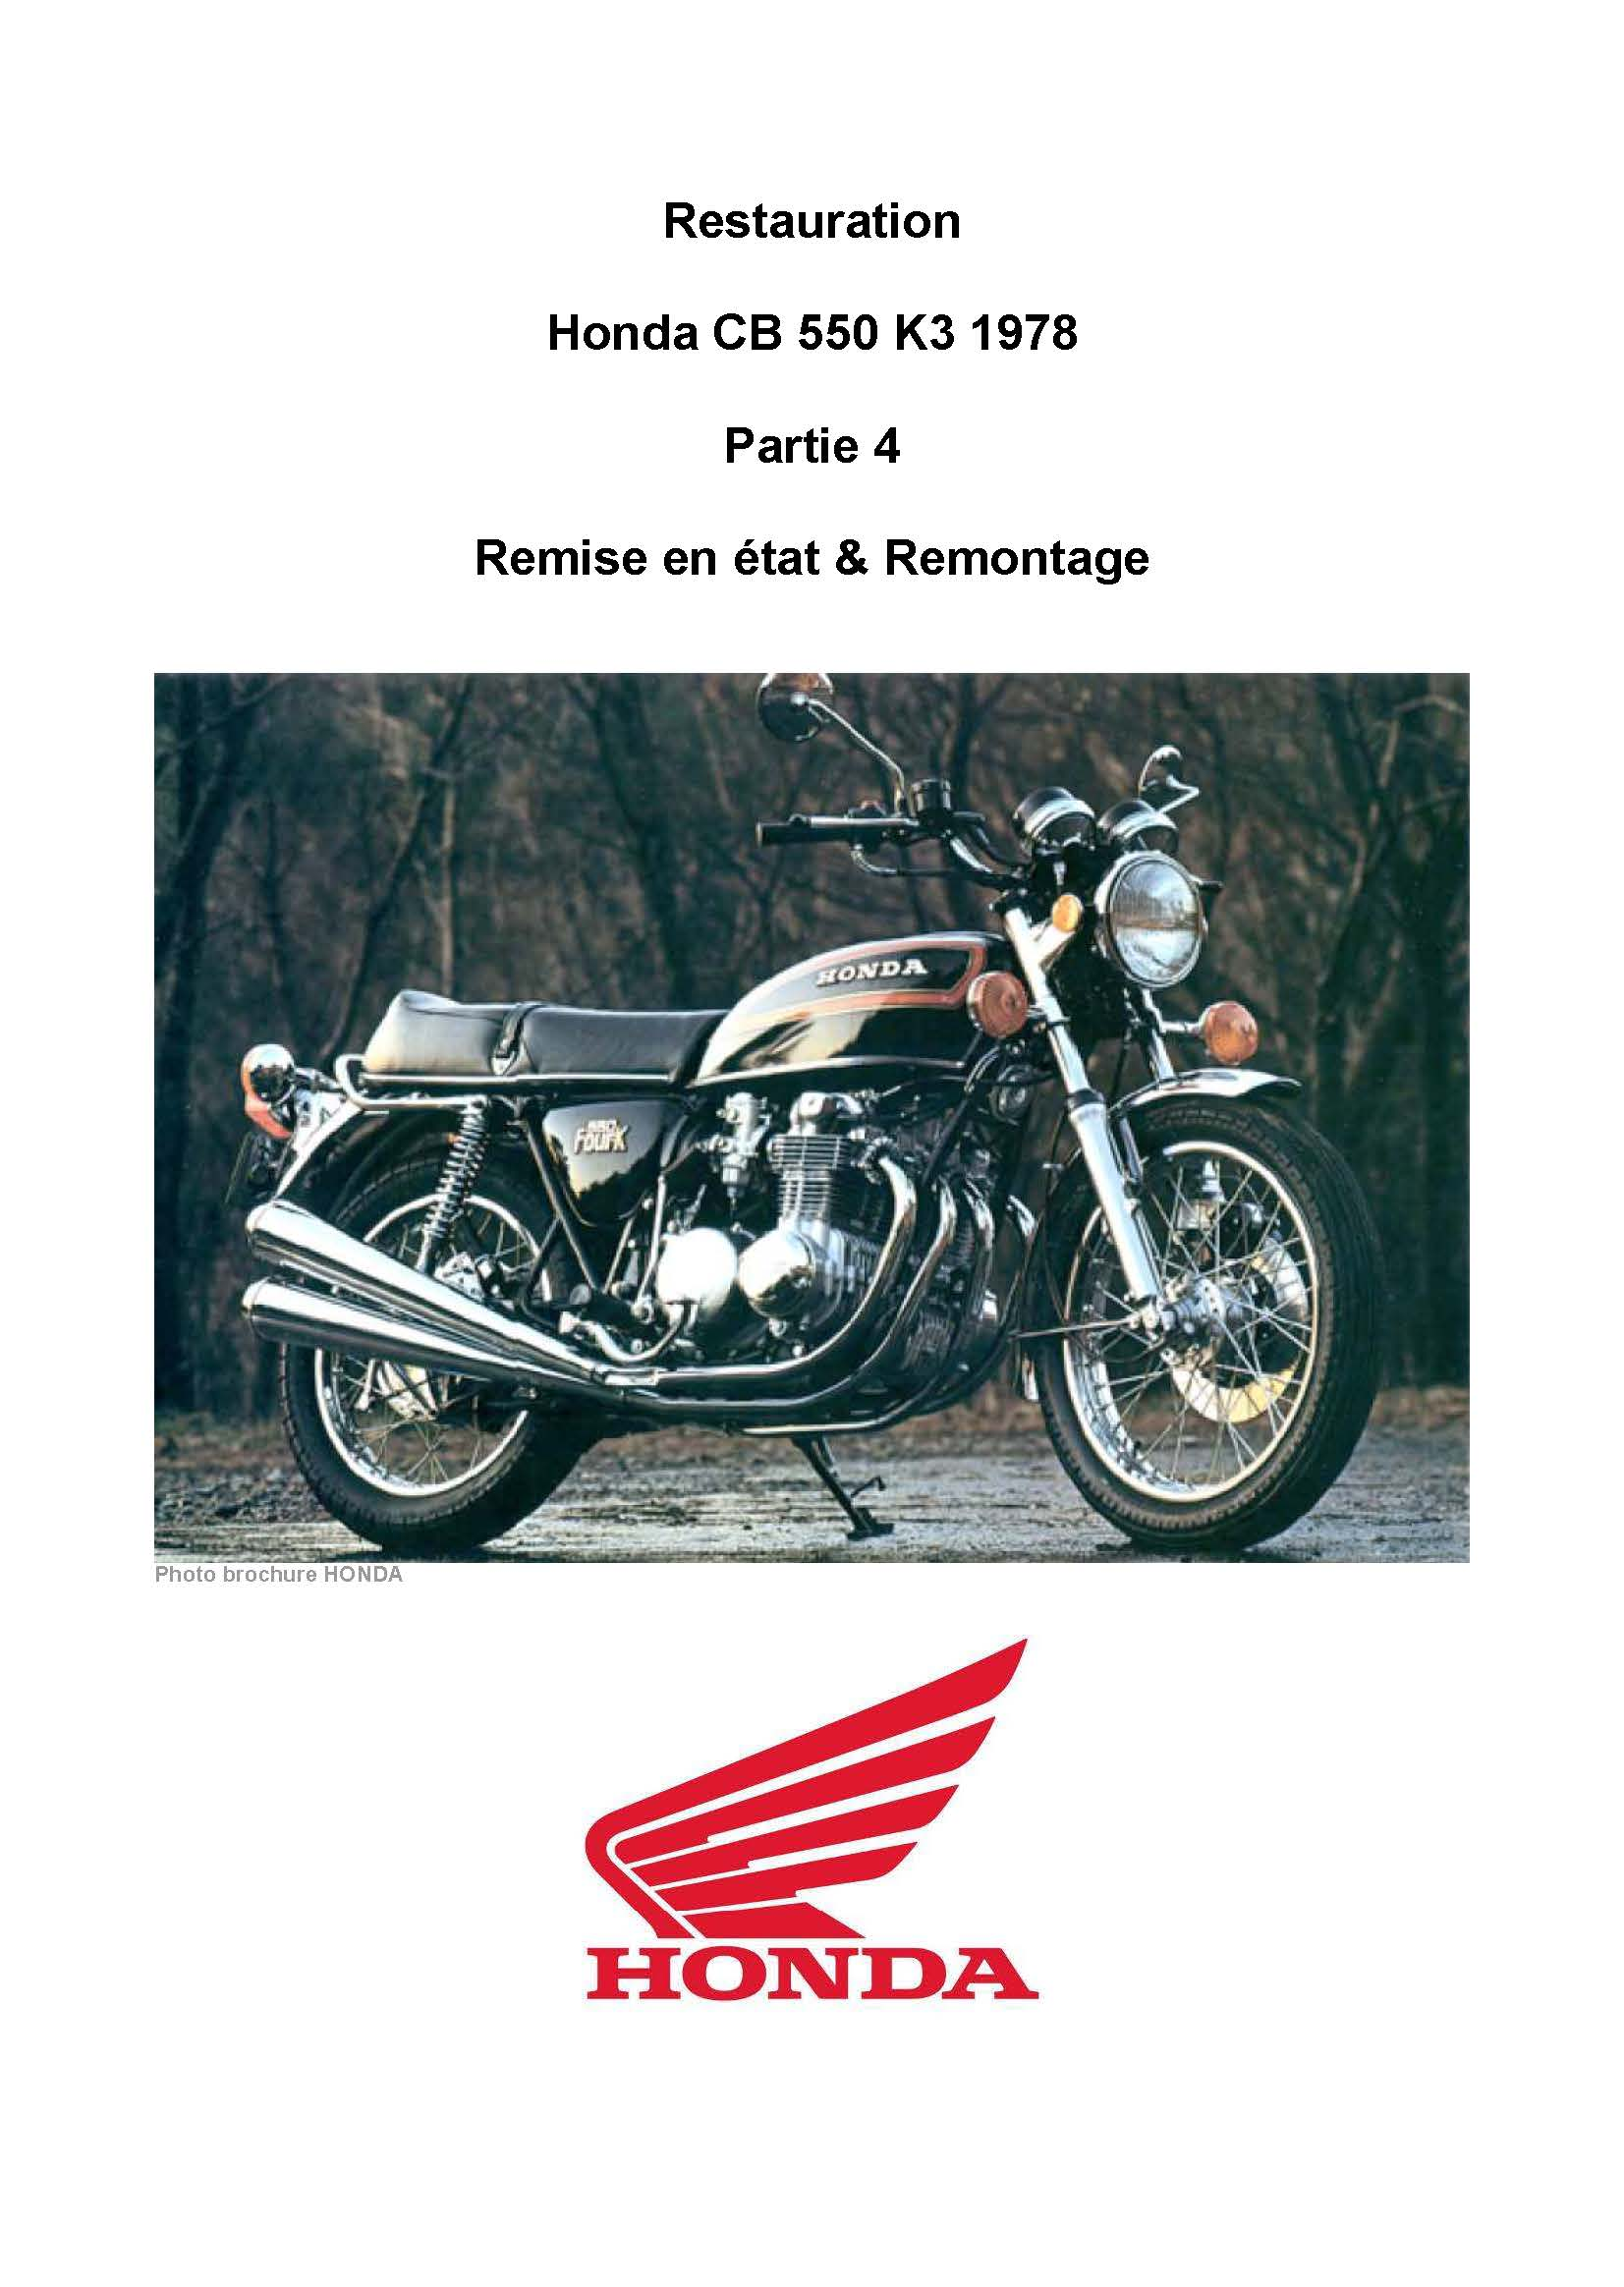 Master brake cylinder restoration for Honda CB550K3 (1978) (French)